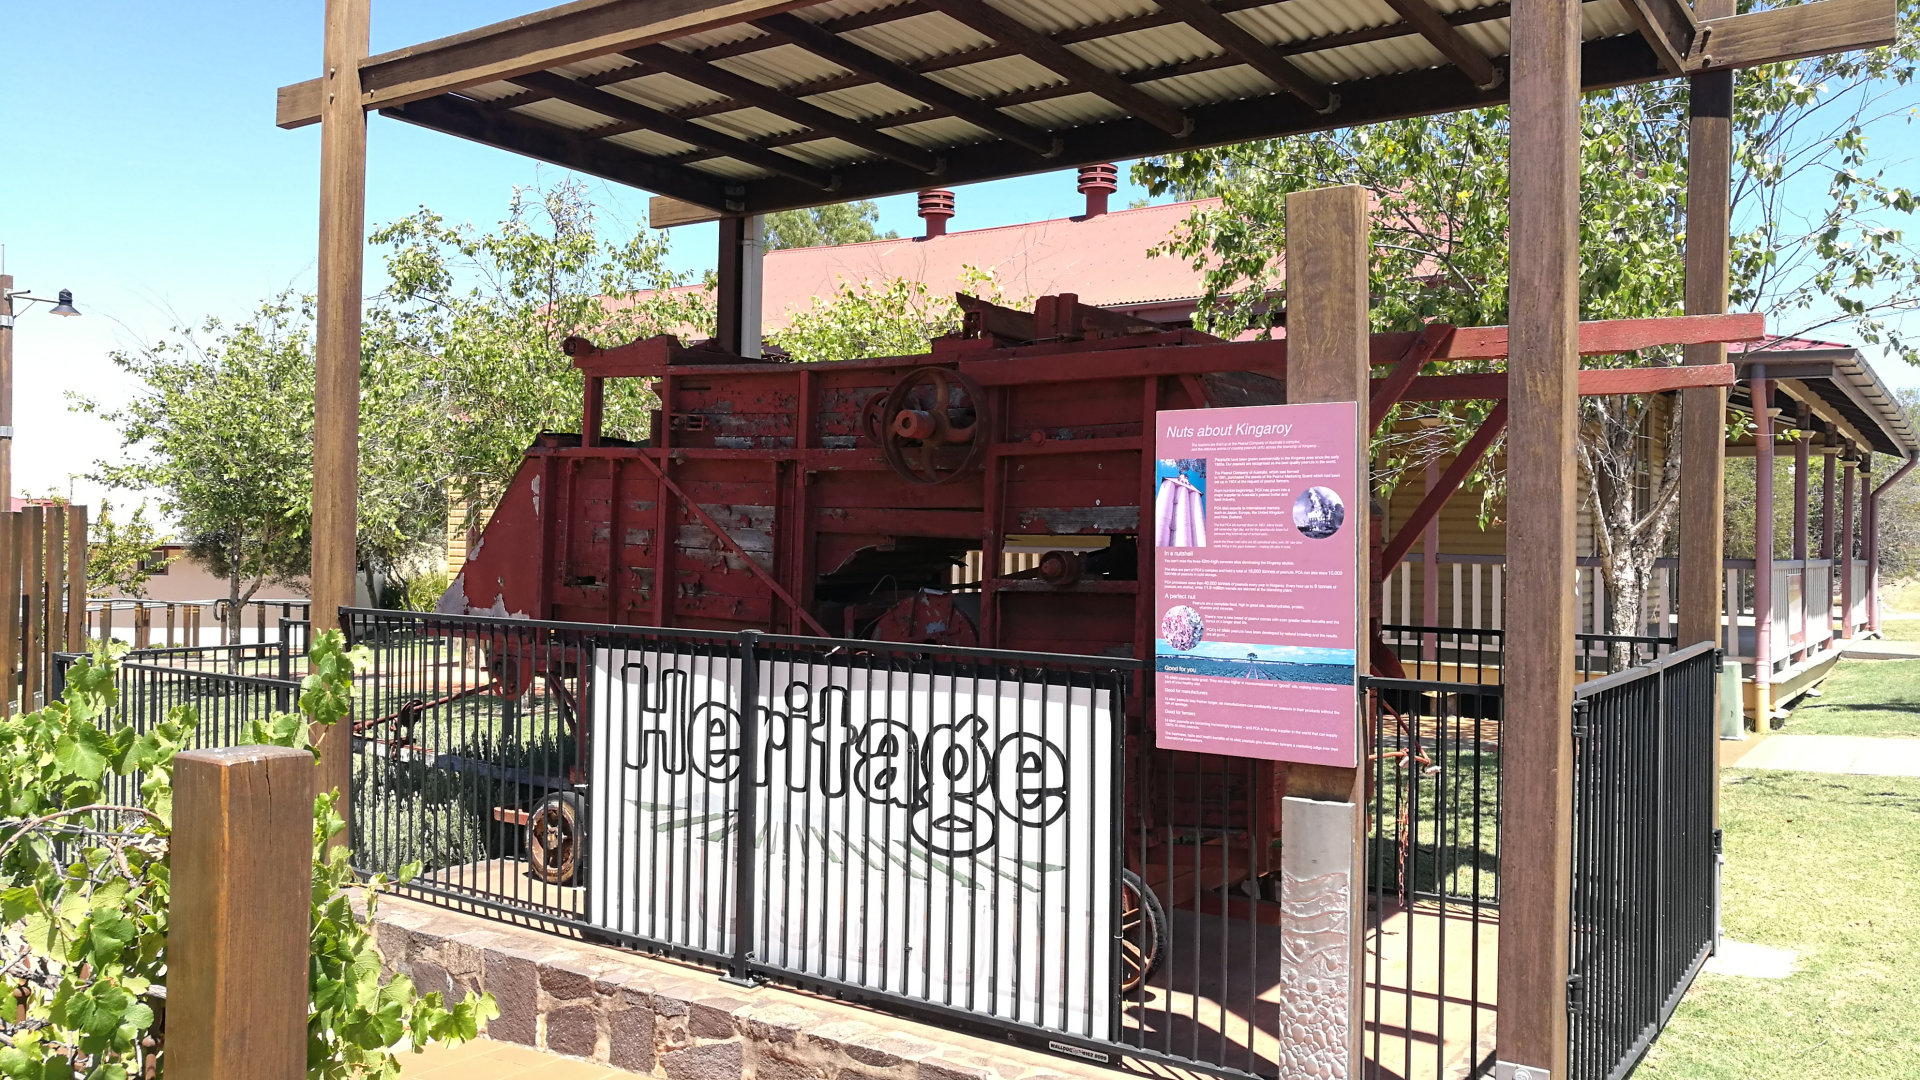 Peanut thresher outside at the back entry of The Kingaroy Heritage Museum. The museum is adjoined to the Kingaroy Information Centre, with machinery from the peanut industry, and other heritage items from the area